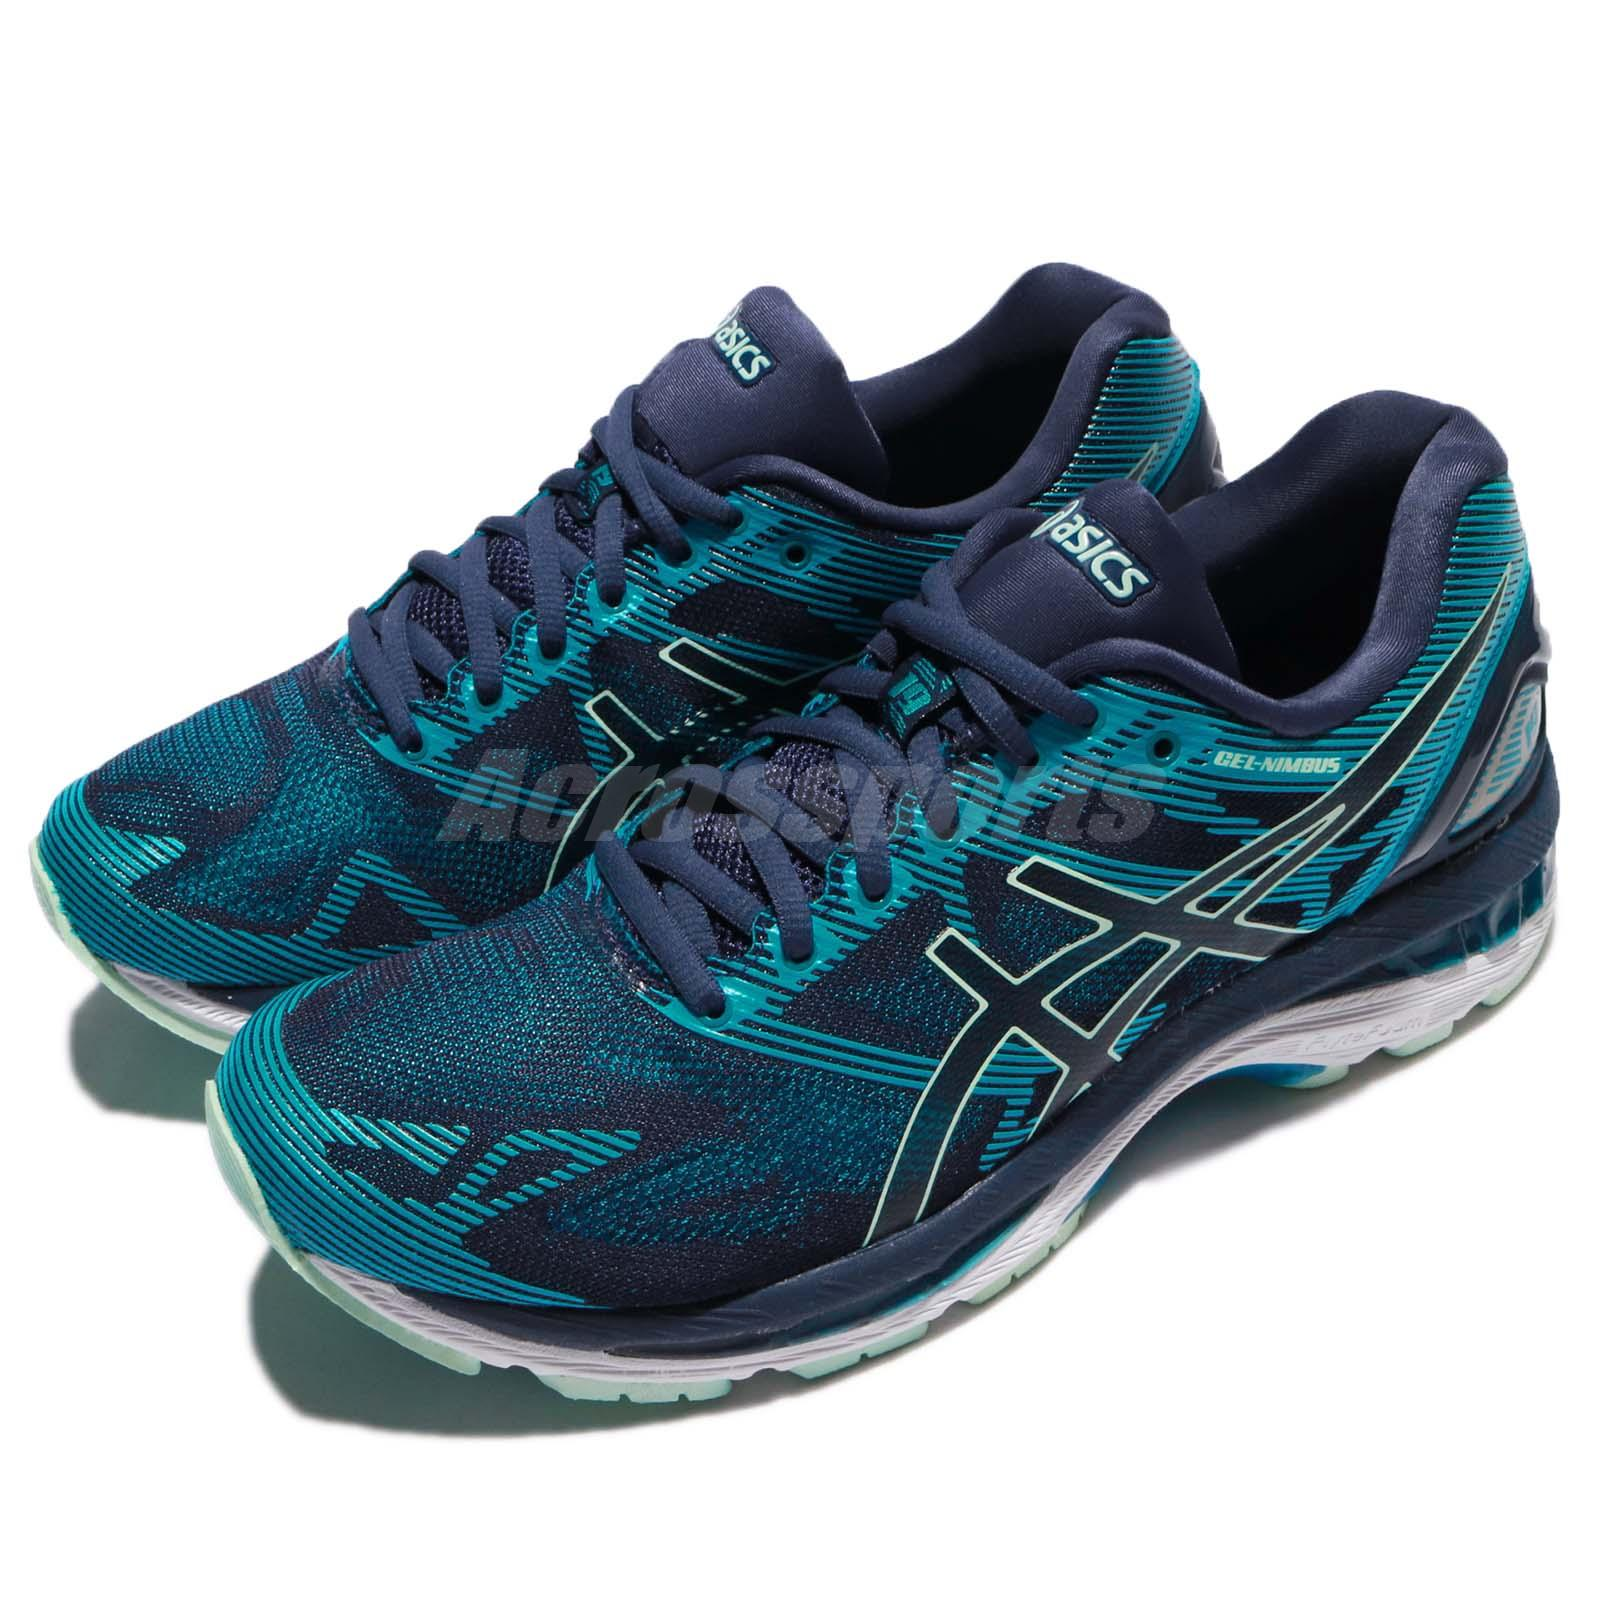 best website 056b5 9729b Details about Asics Gel-Nimbus 19 Insignia Blue Glacier Sea Women Running  Shoes T750N-5067